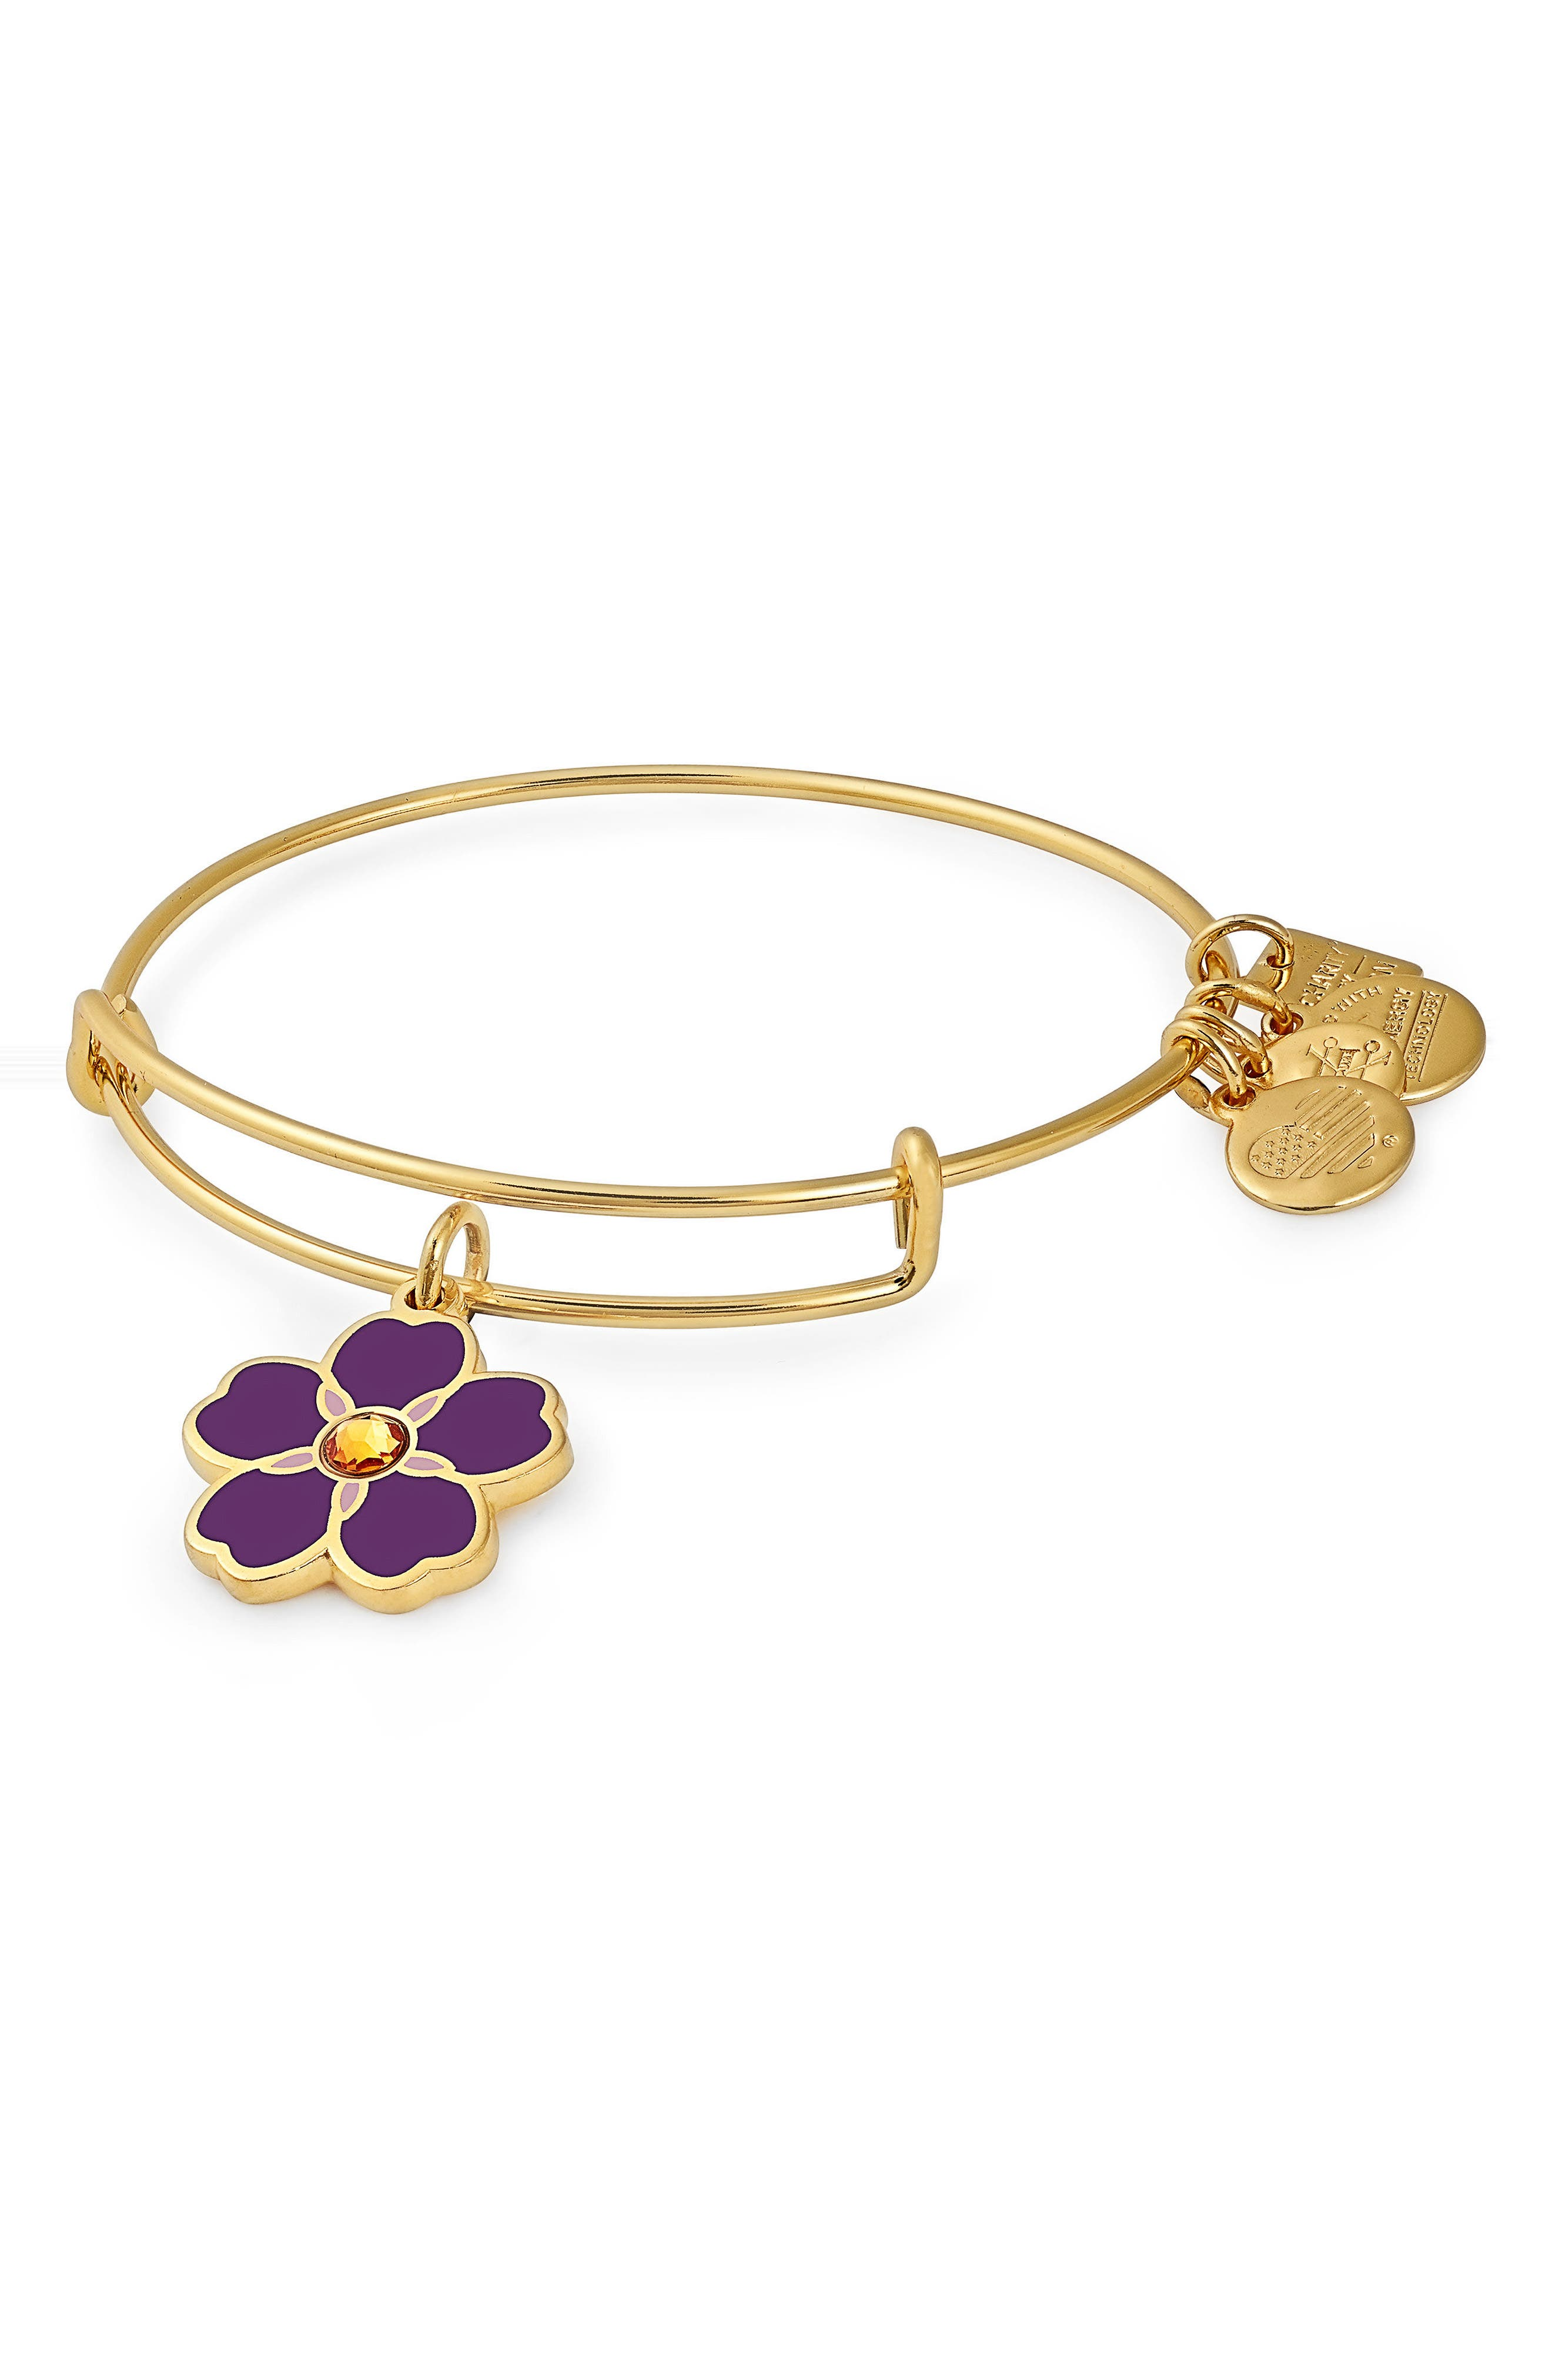 Alex and Ani Charity by Design Forget Me Not Charm Bracelet